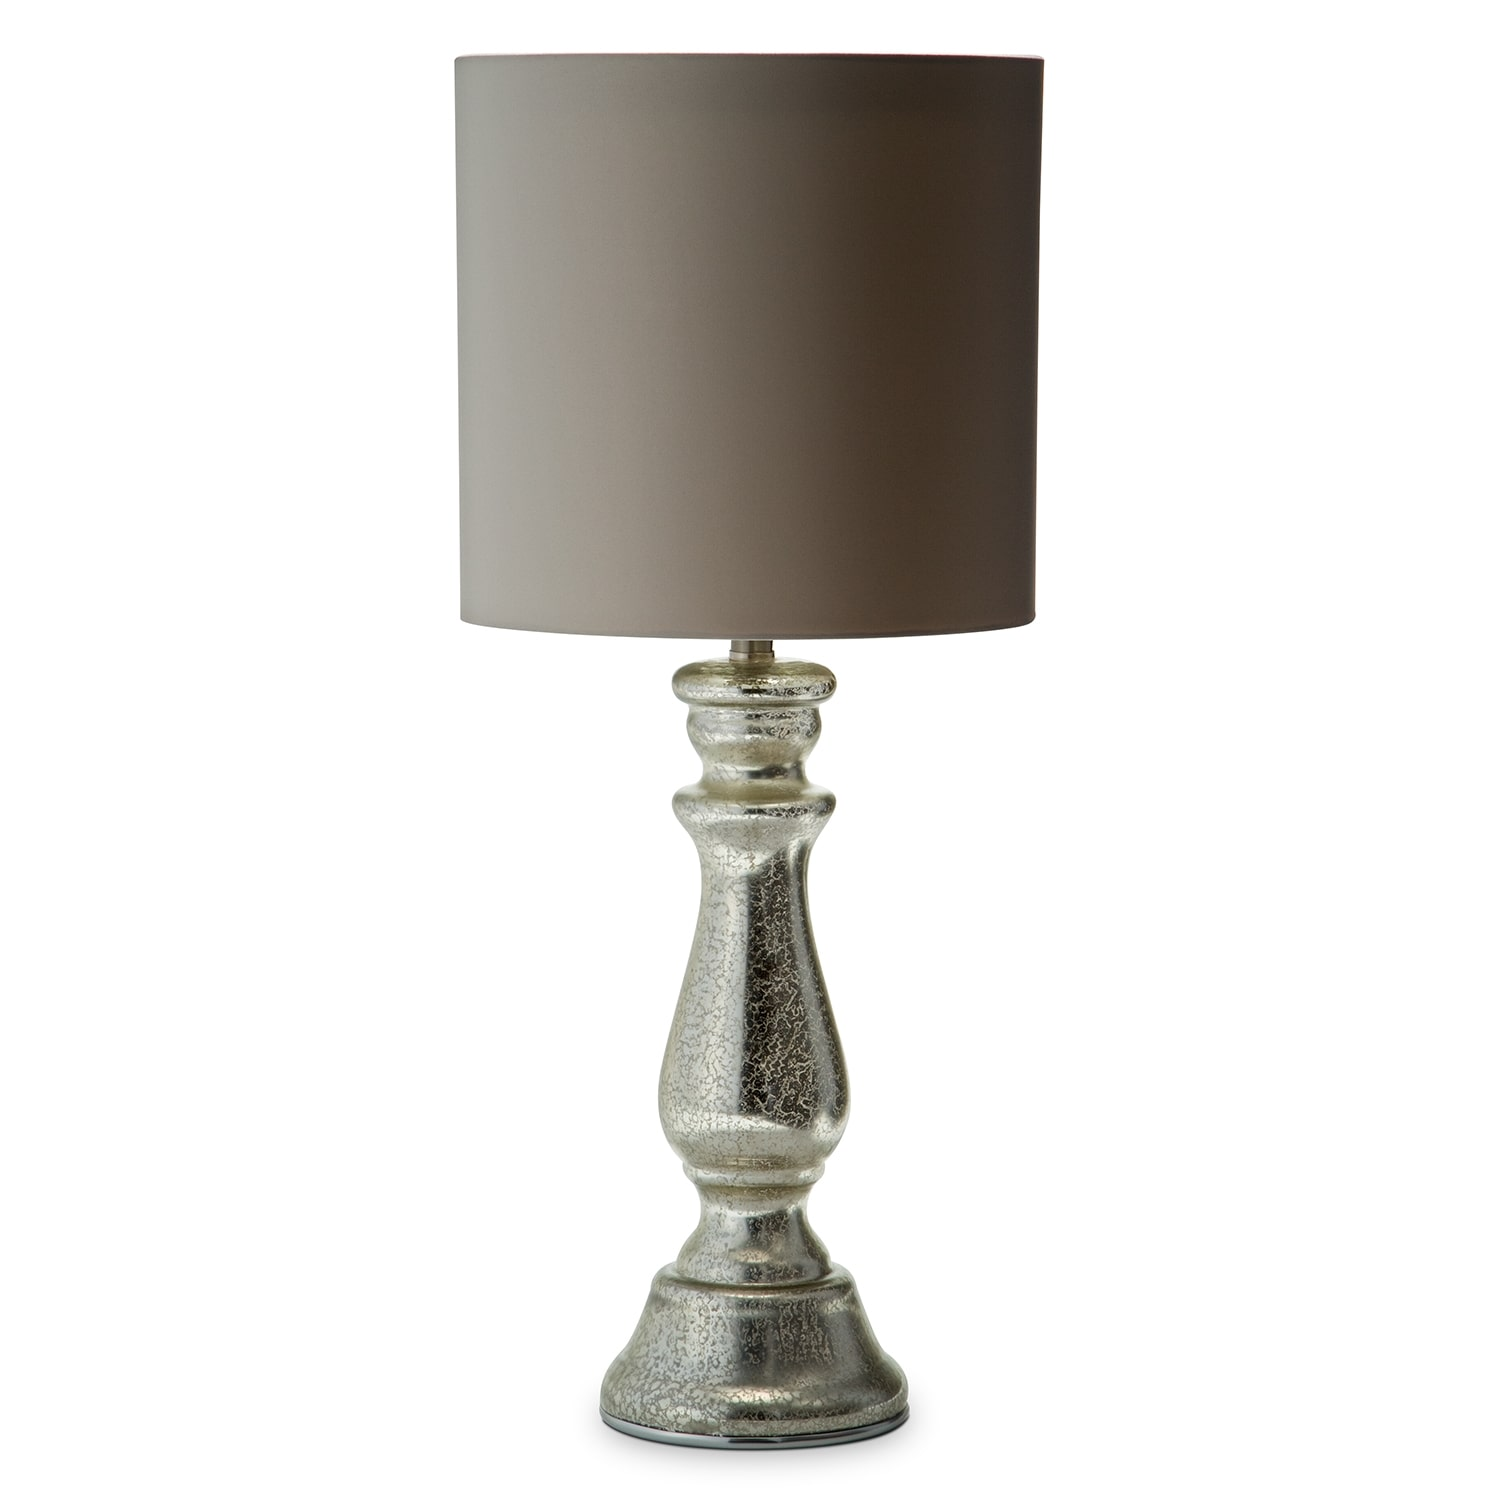 home accessories mercury glass table lamp. Black Bedroom Furniture Sets. Home Design Ideas